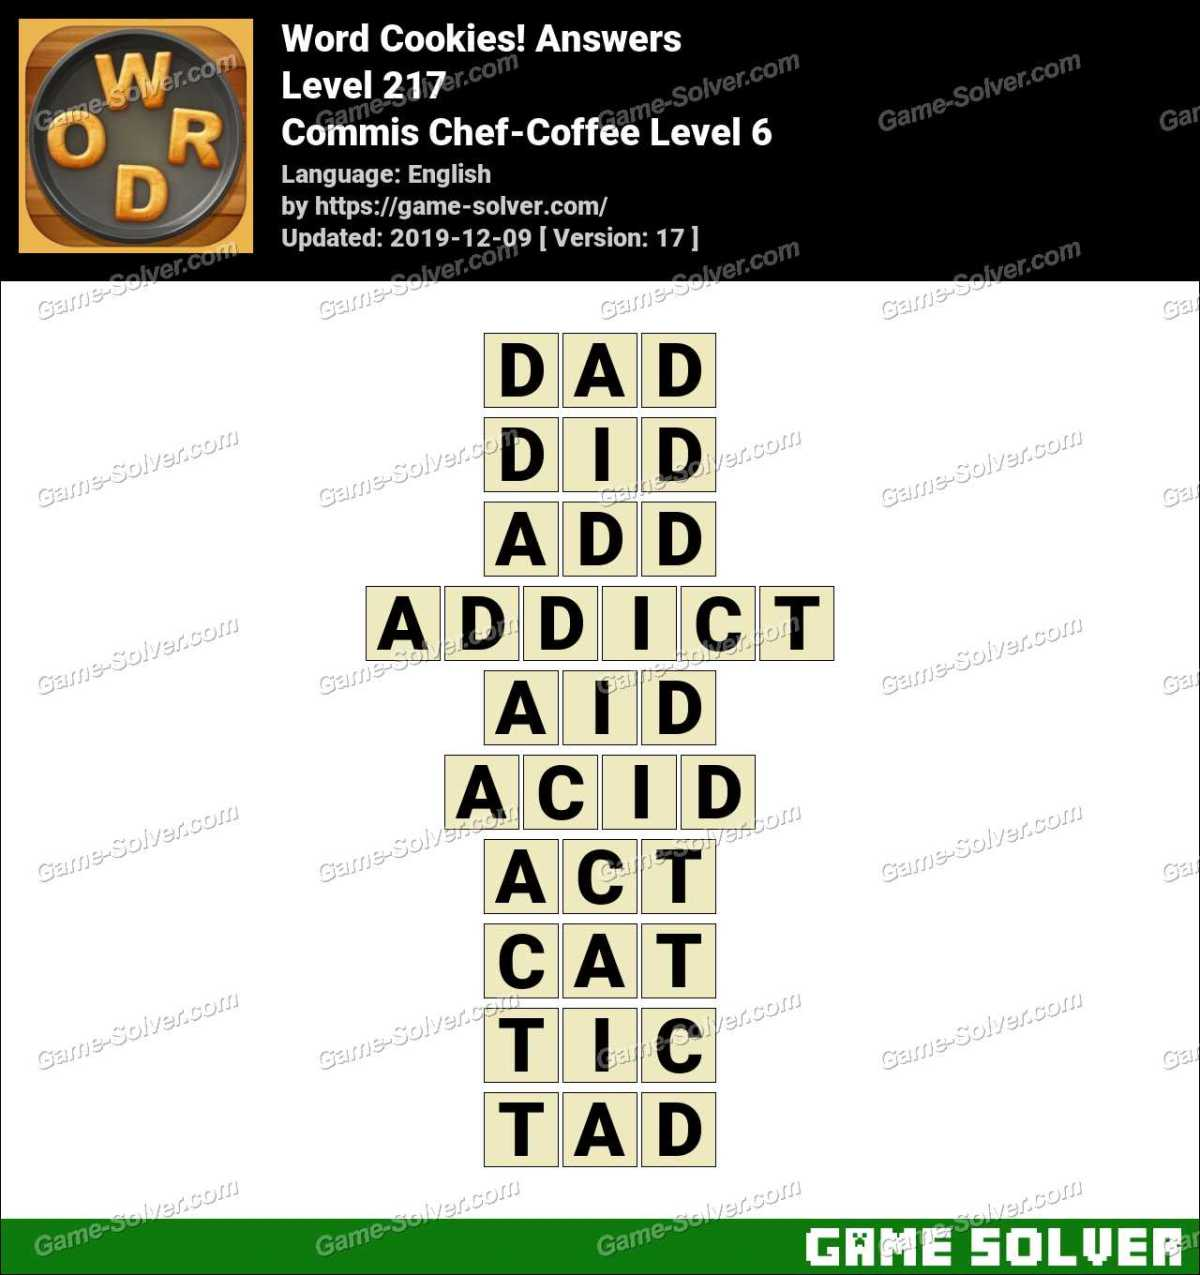 Word Cookies Commis Chef-Coffee Level 6 Answers